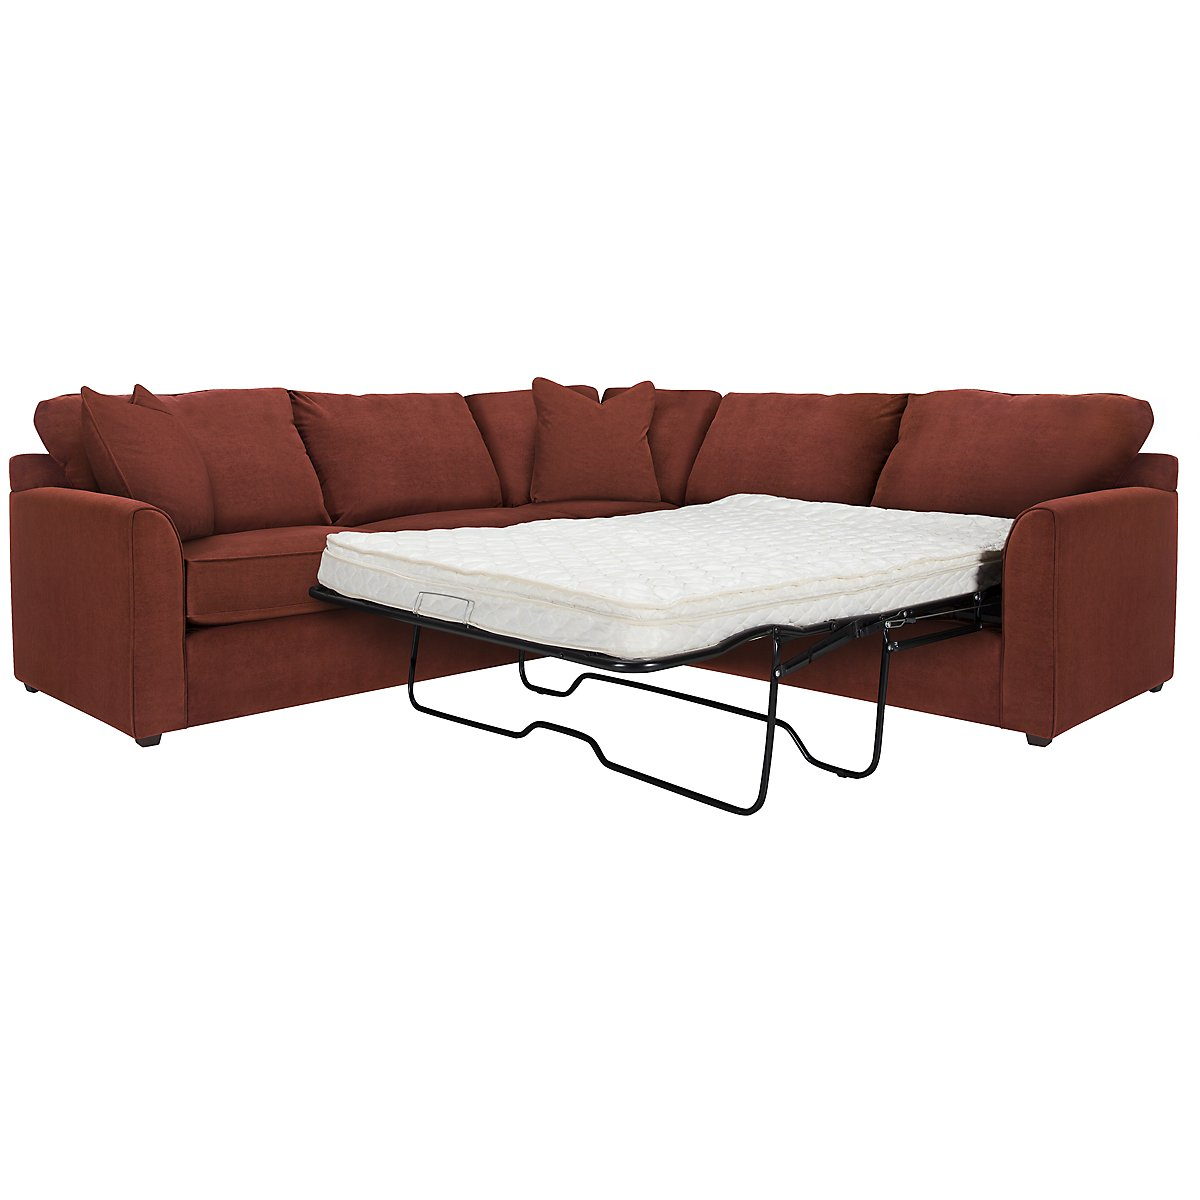 Express3 Red Microfiber Two-Arm Left Memory Foam Sleeper Sectional